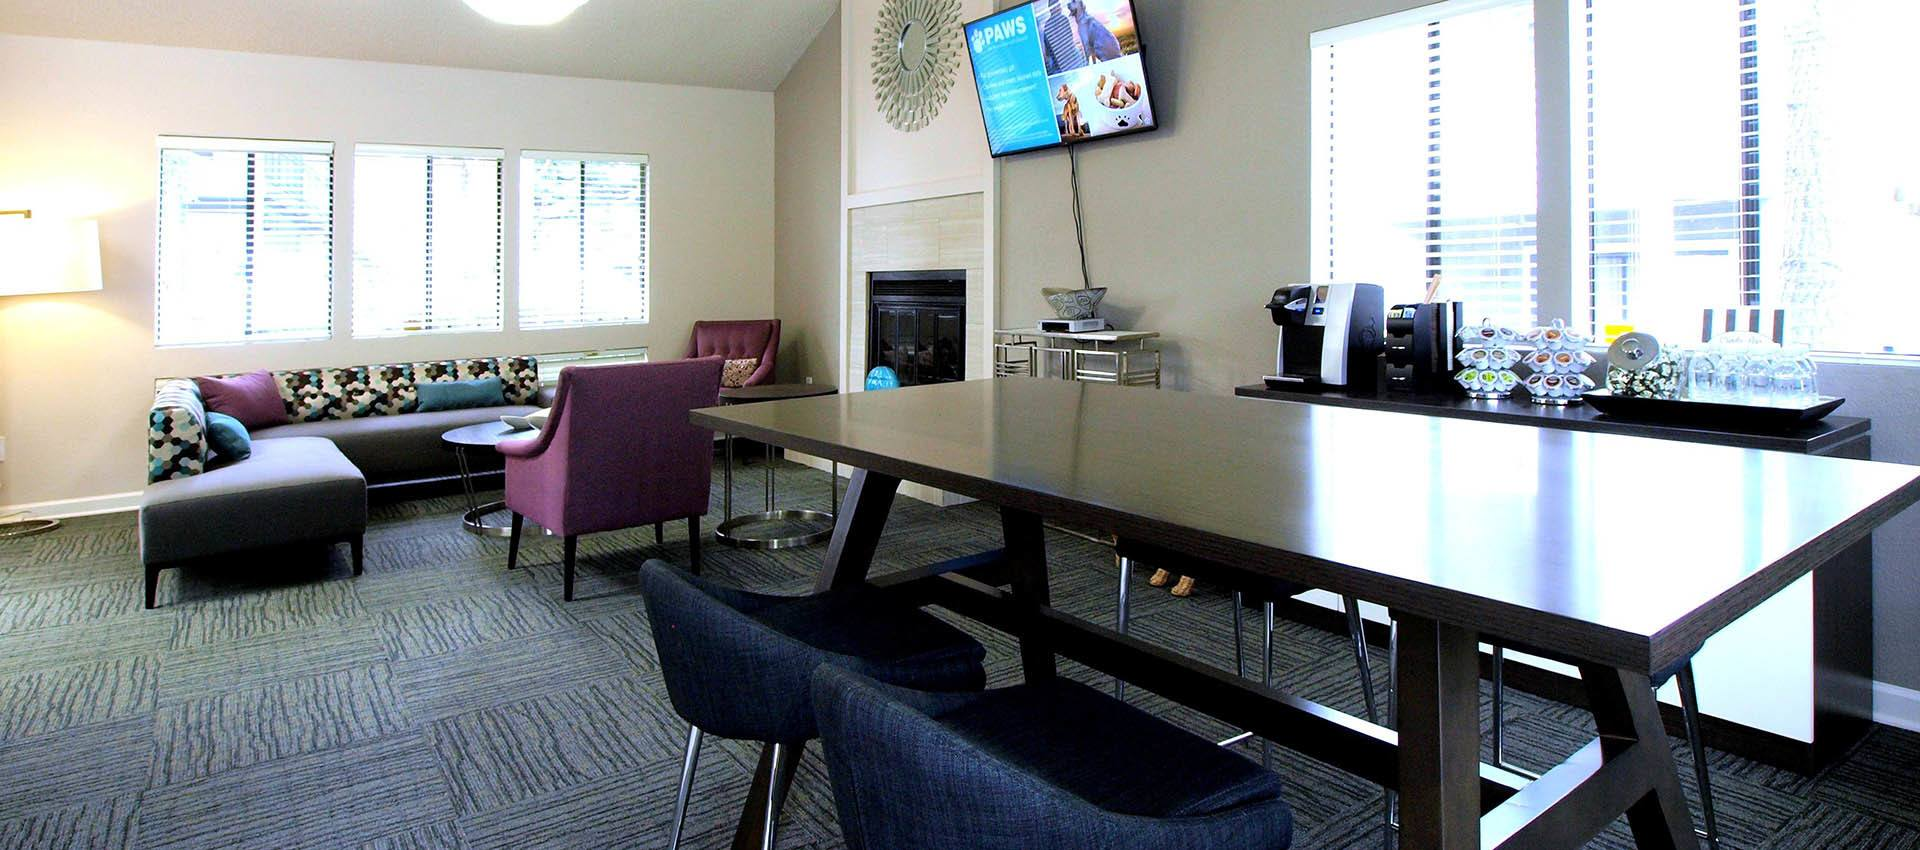 Resident Lounge at Plum Tree Apartment Homes in Martinez, California